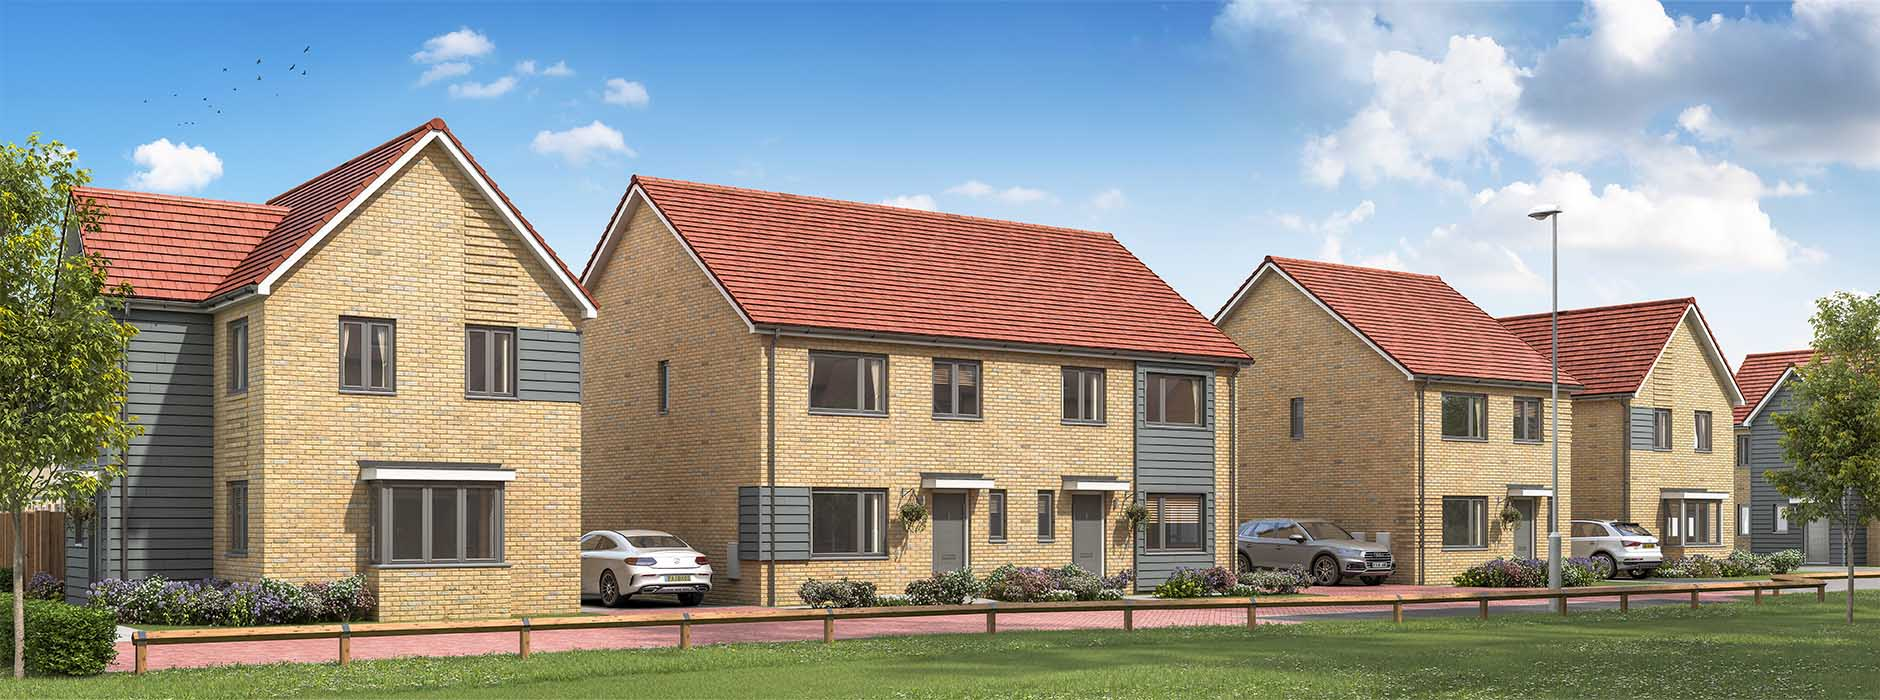 Keepmoat Homes Starts Delivery of Belgrave Place